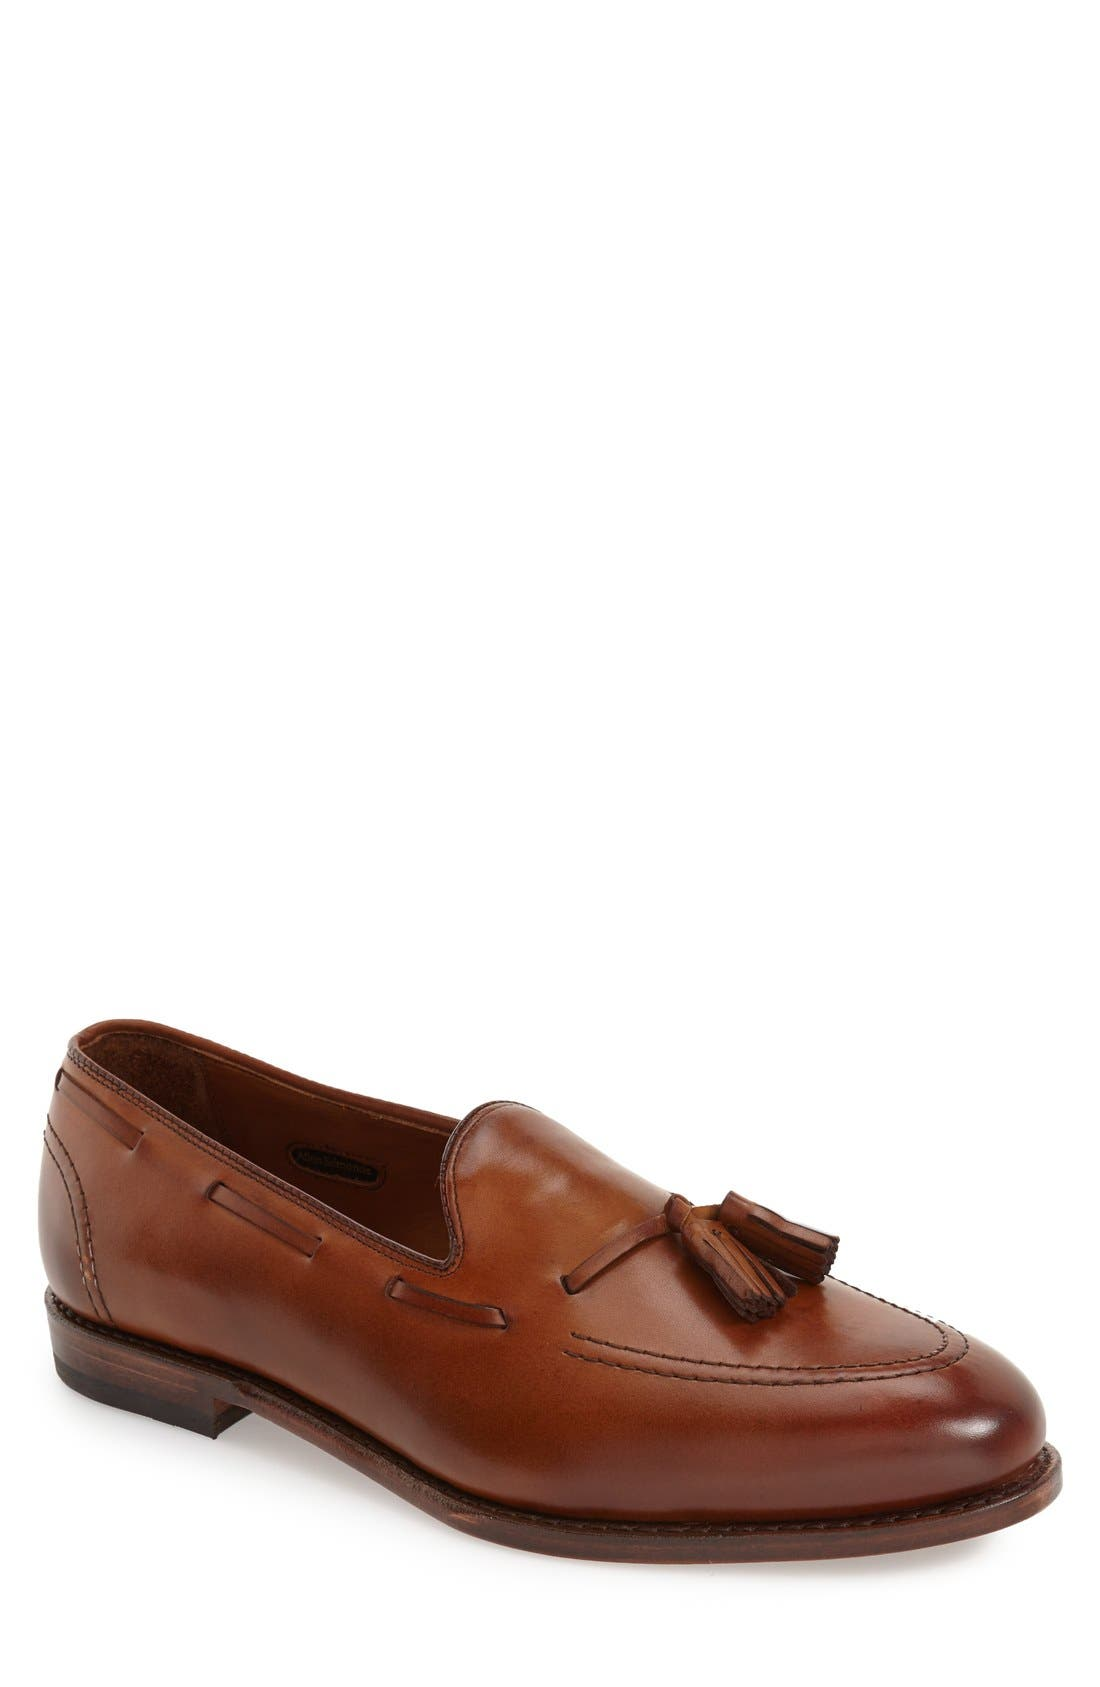 ALLEN EDMONDS, 'Acheson' Tassel Loafer, Main thumbnail 1, color, WALNUT